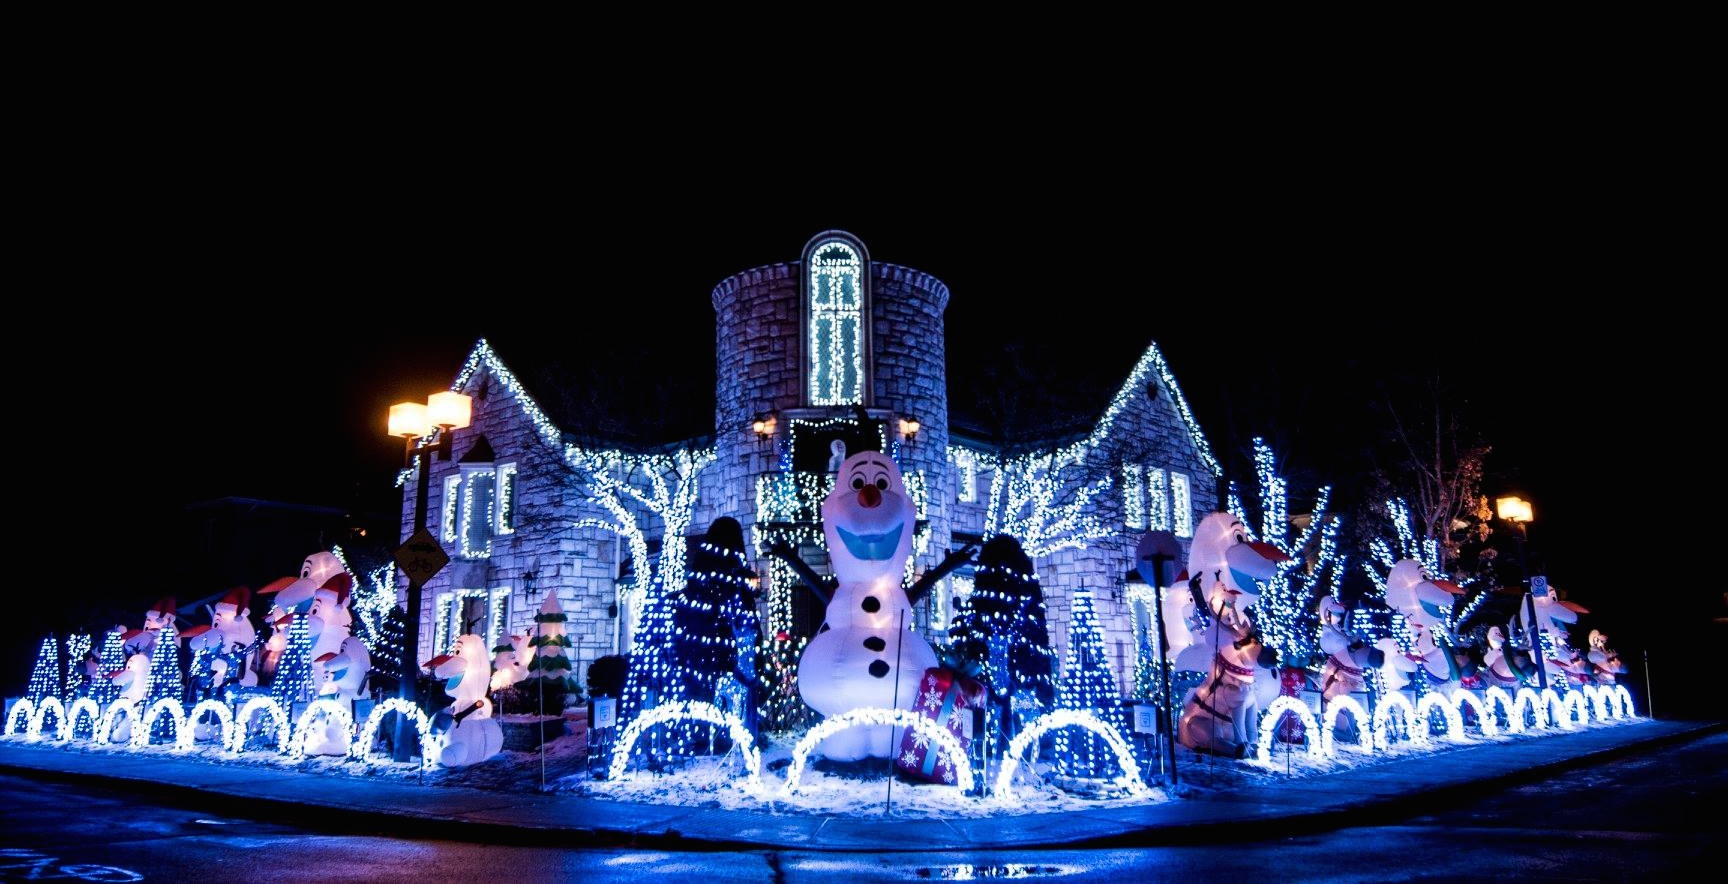 Montreal's 'Christmas Display' house is going full Disney this year